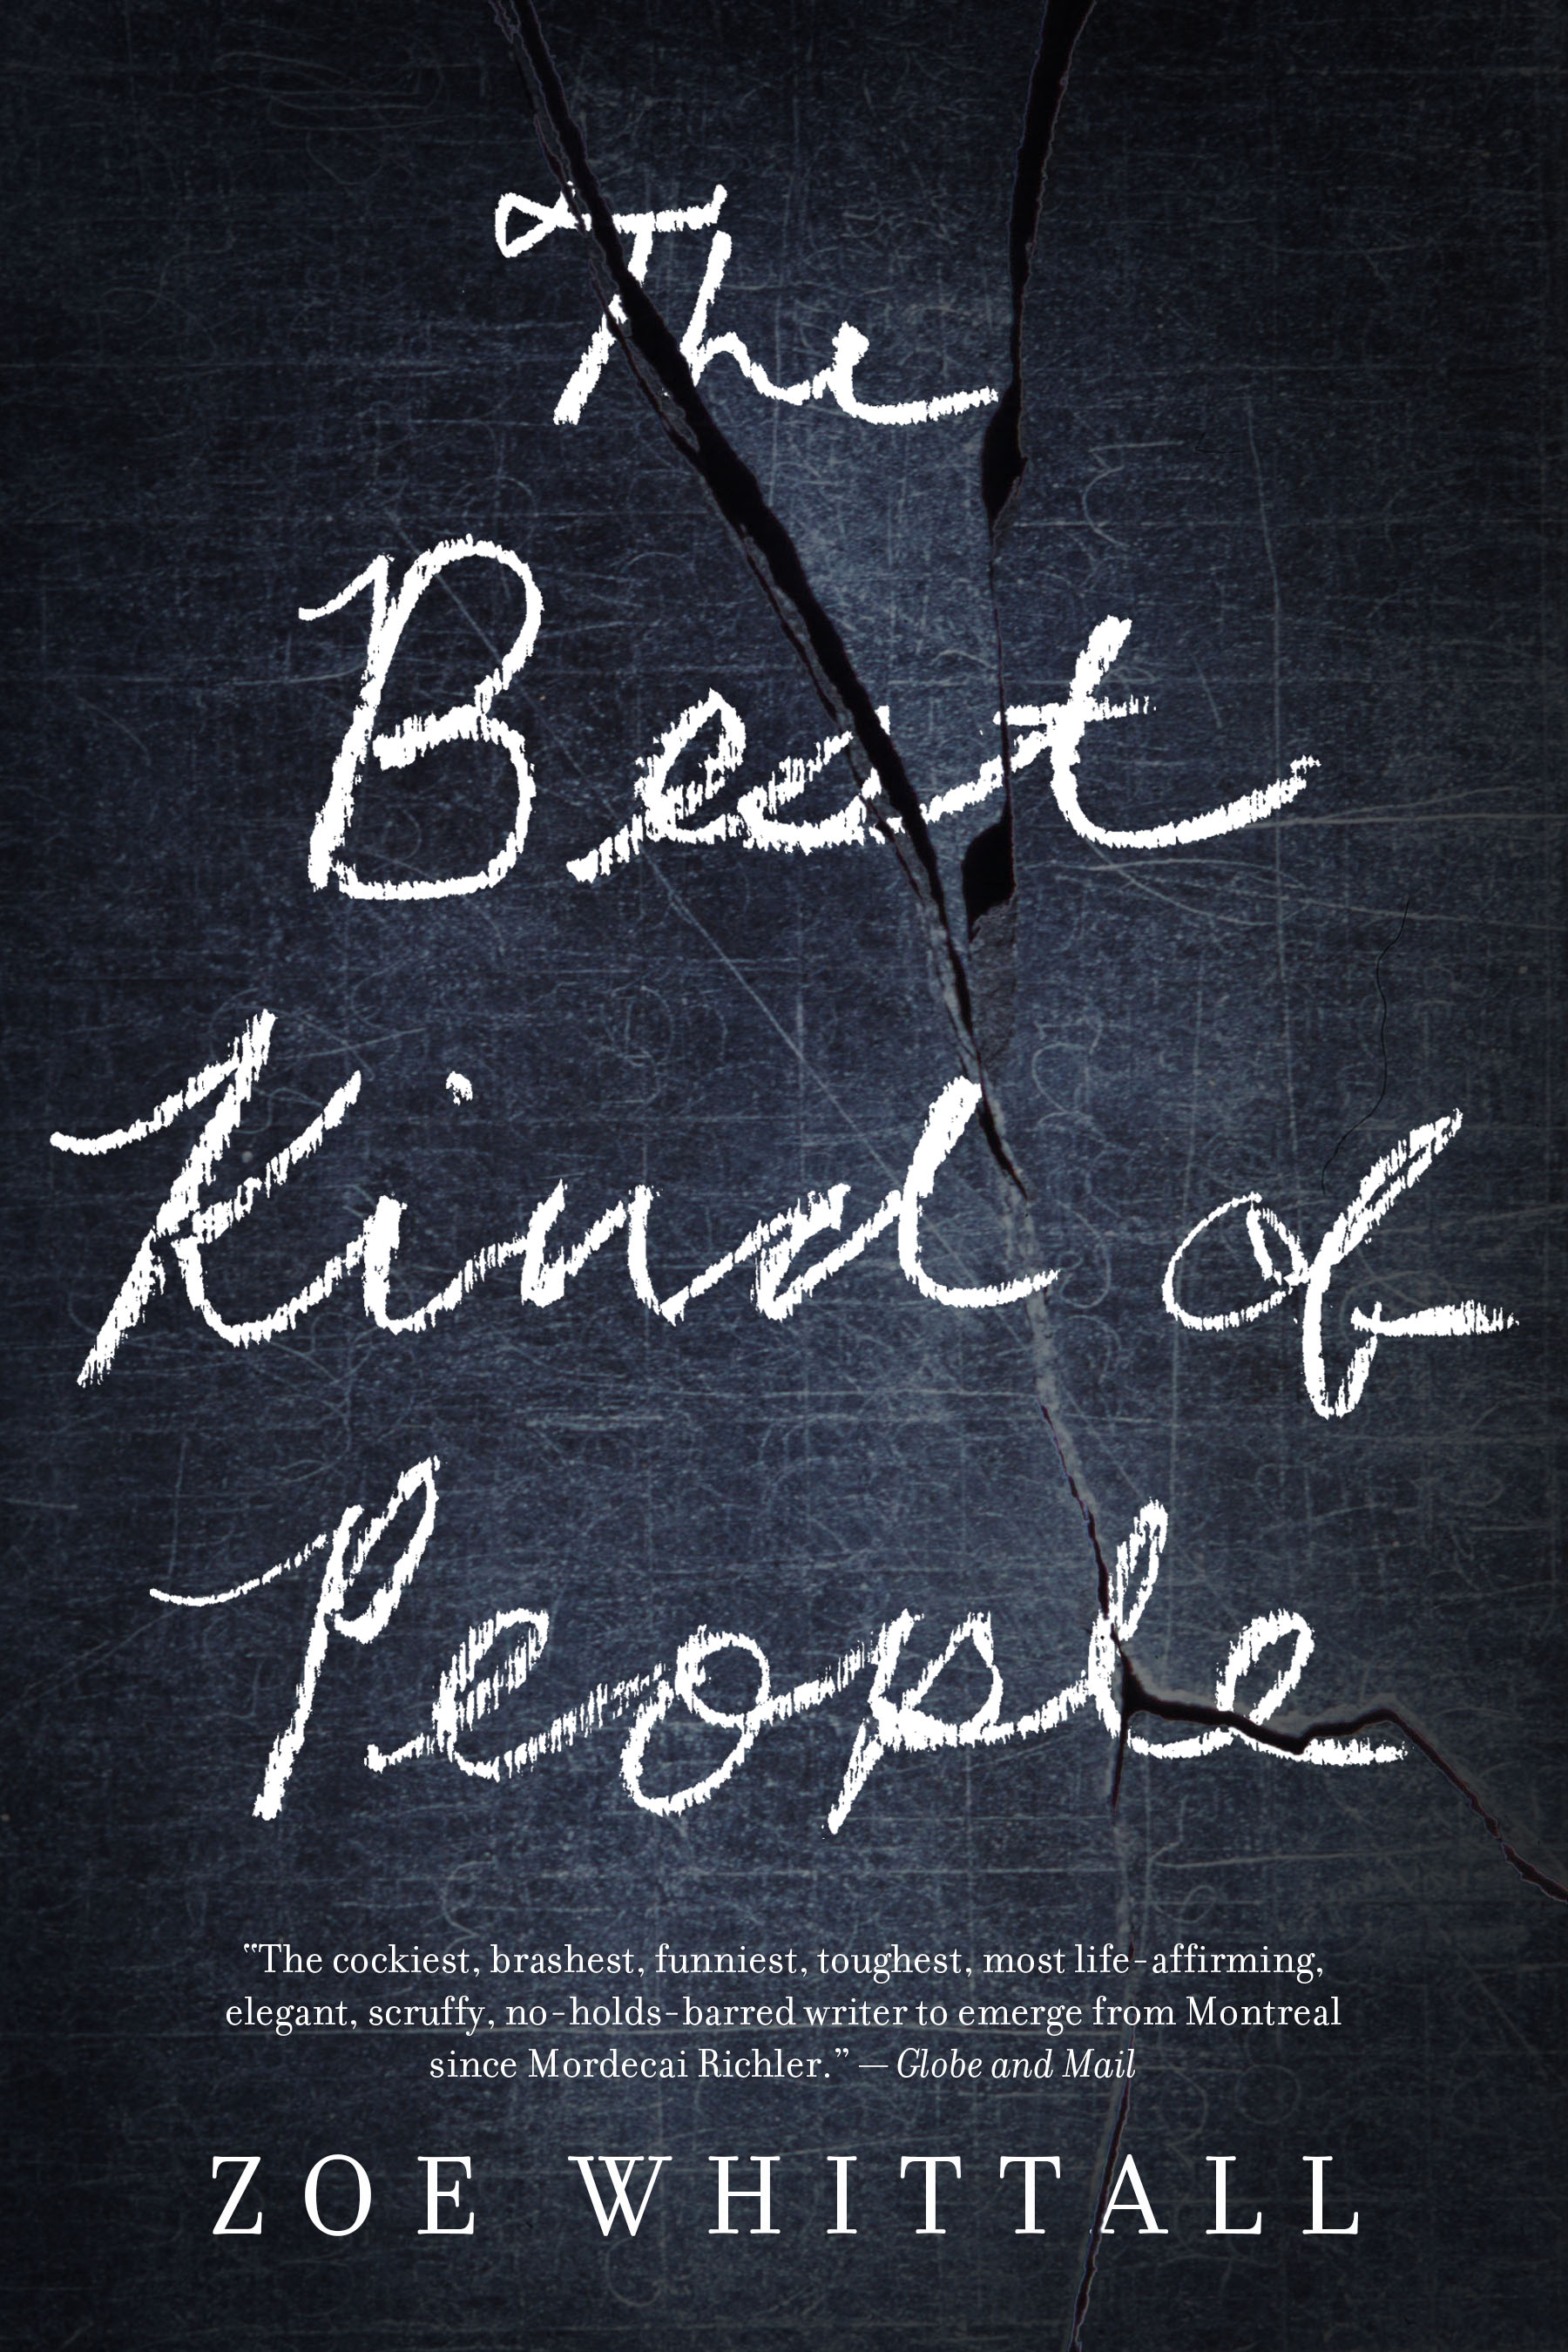 The Best Kind of People eBook Preview